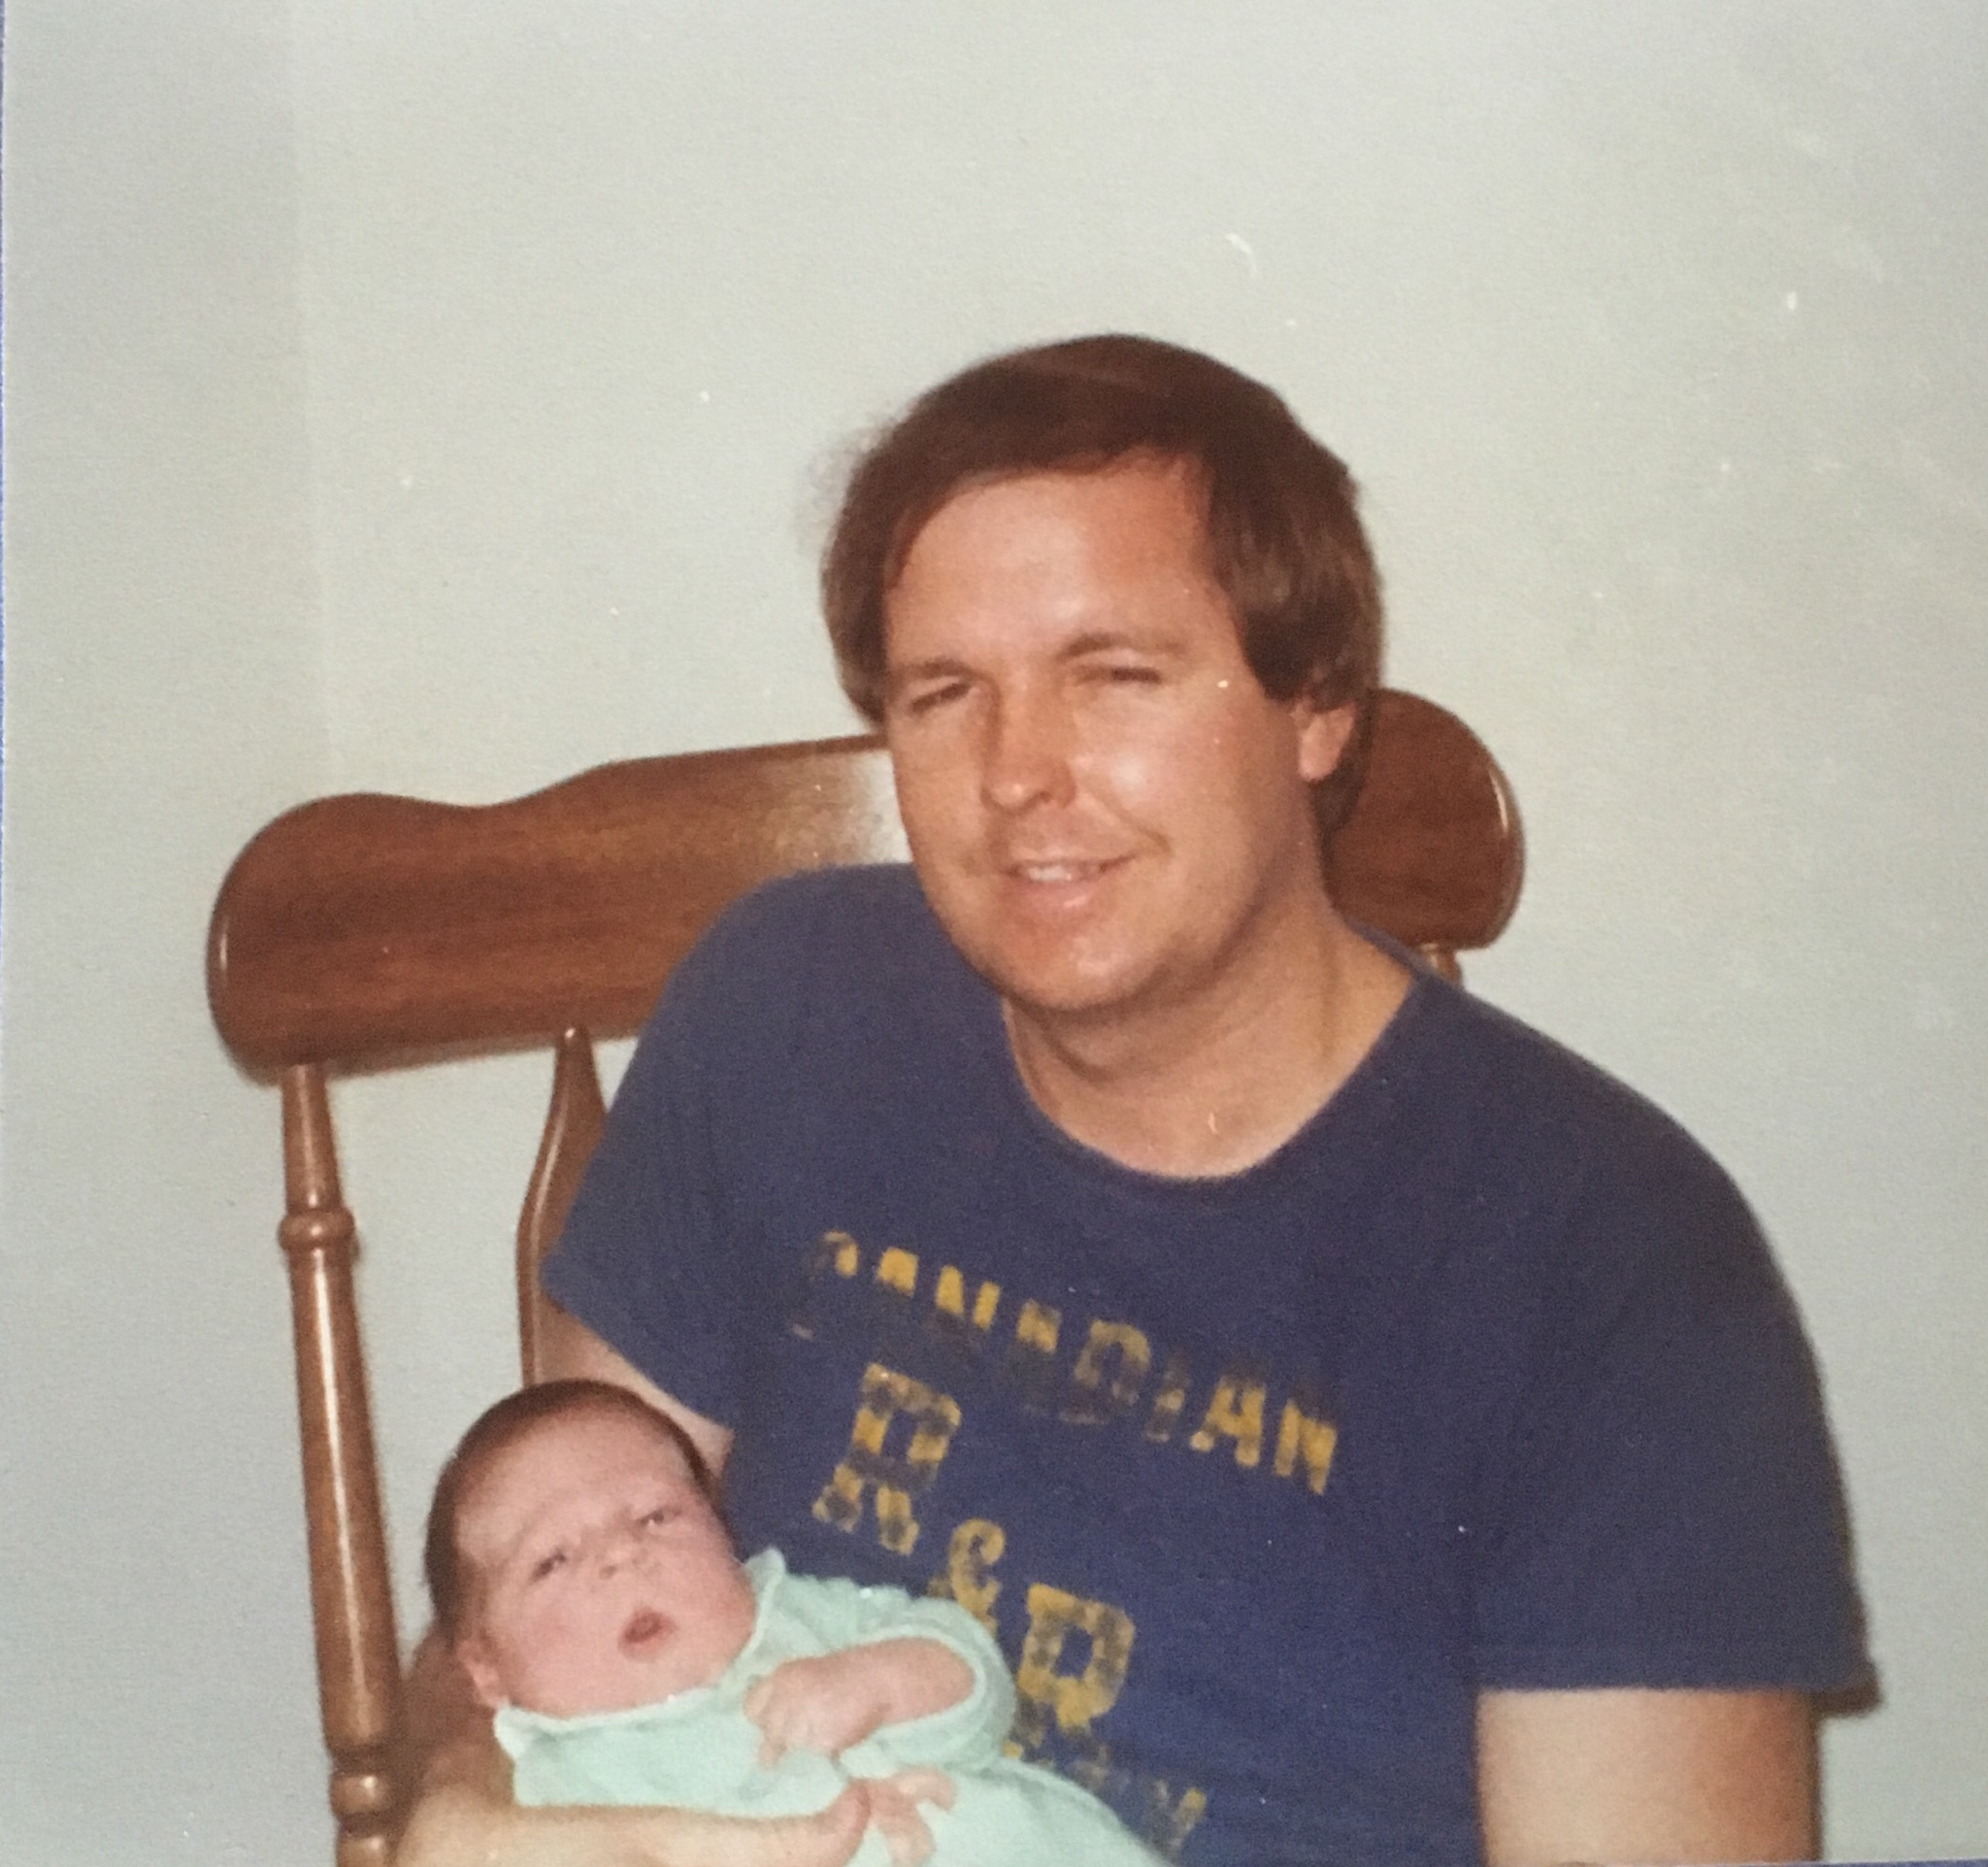 My dad and me in 1978, the year the list was born